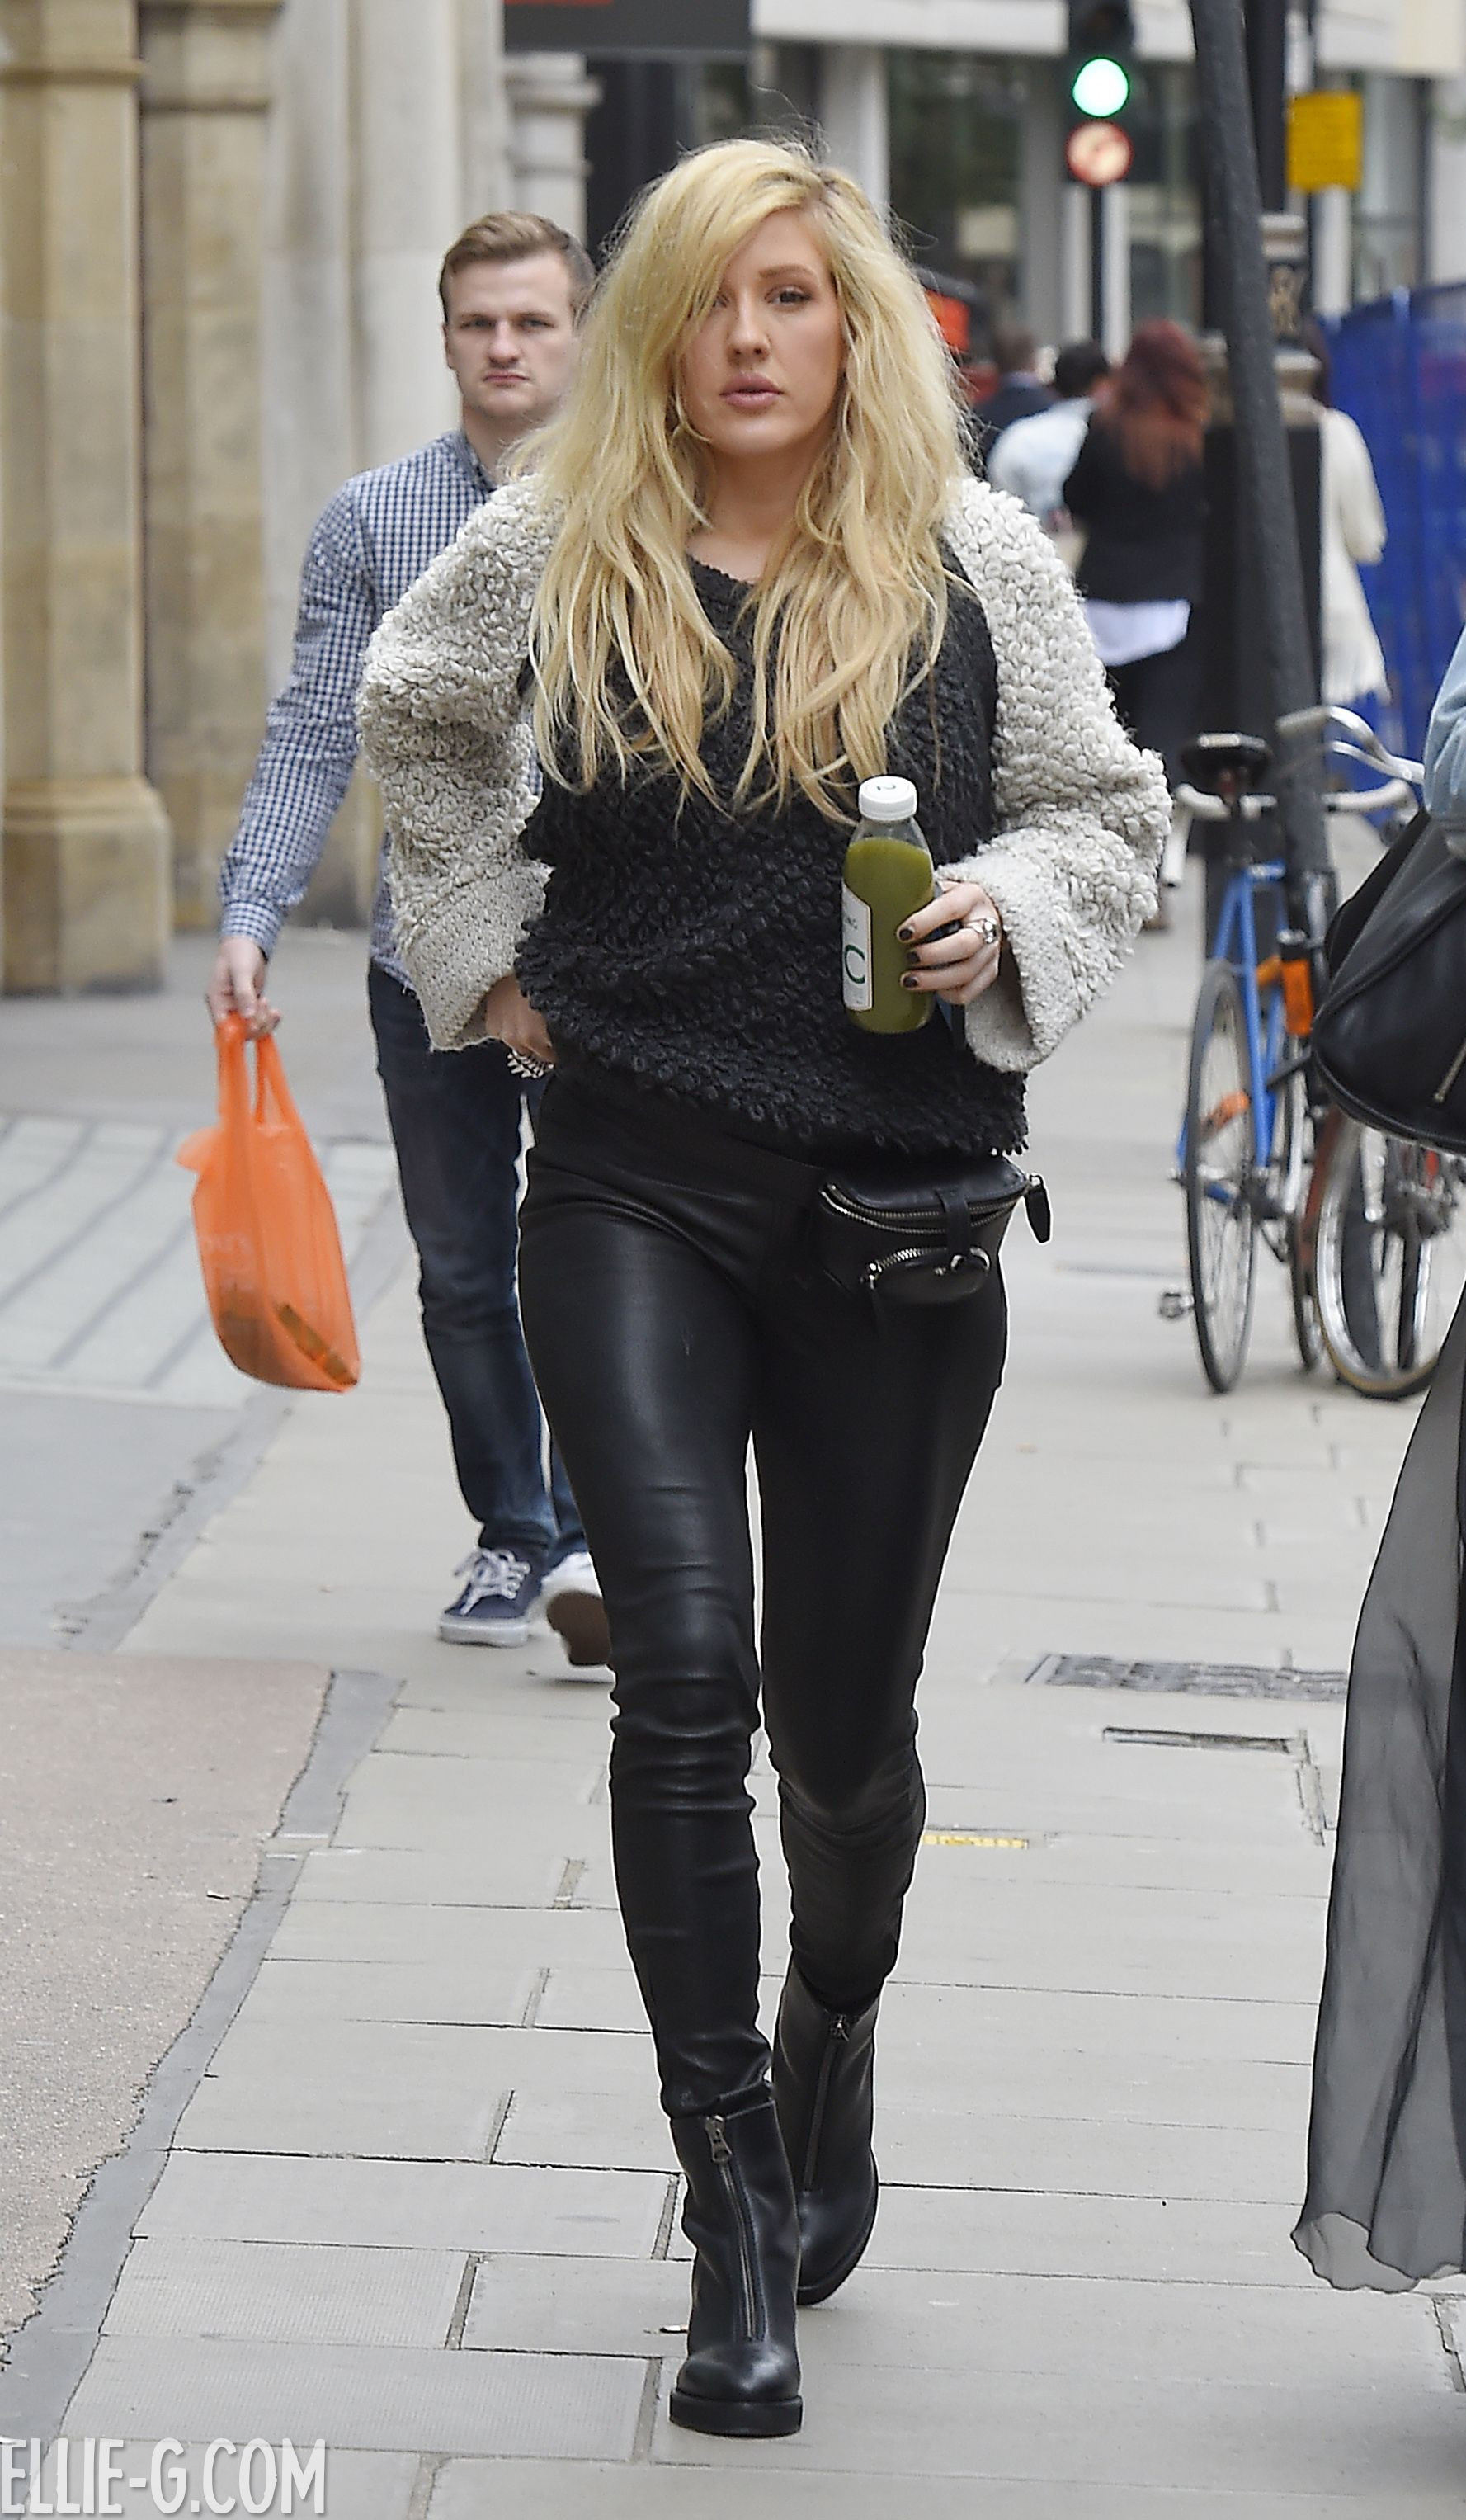 Ellie Goulding Out To Lunch With A Friend Leather